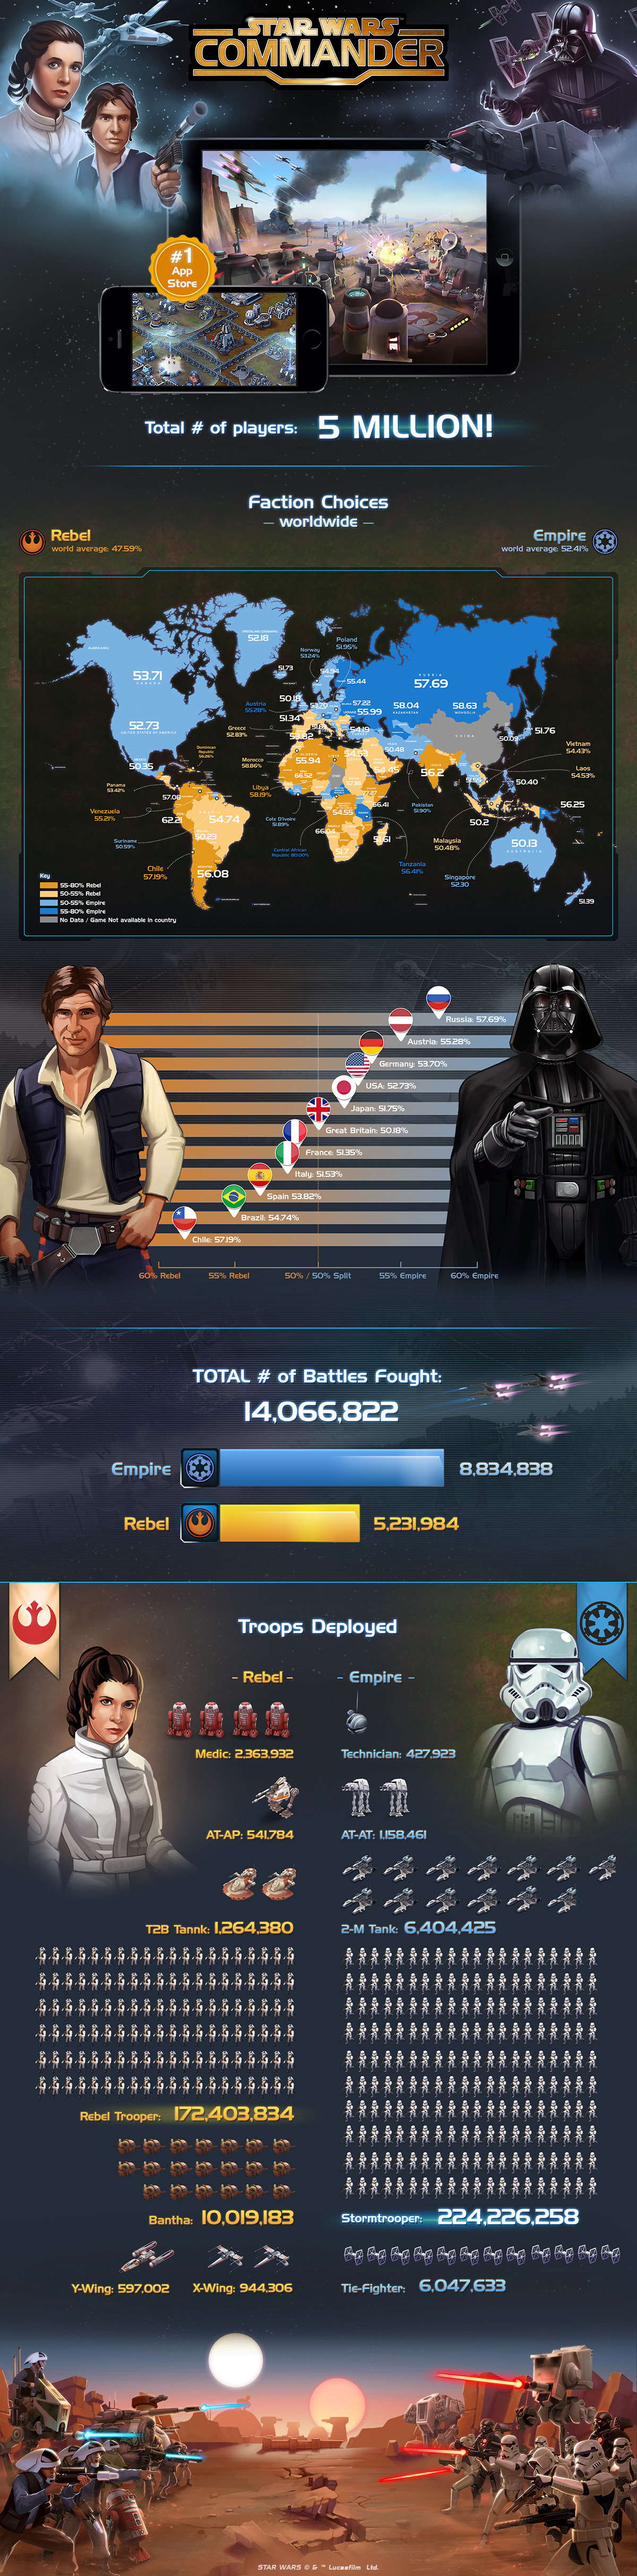 Star Wars: Commander InfoGraphic (Disney Release)